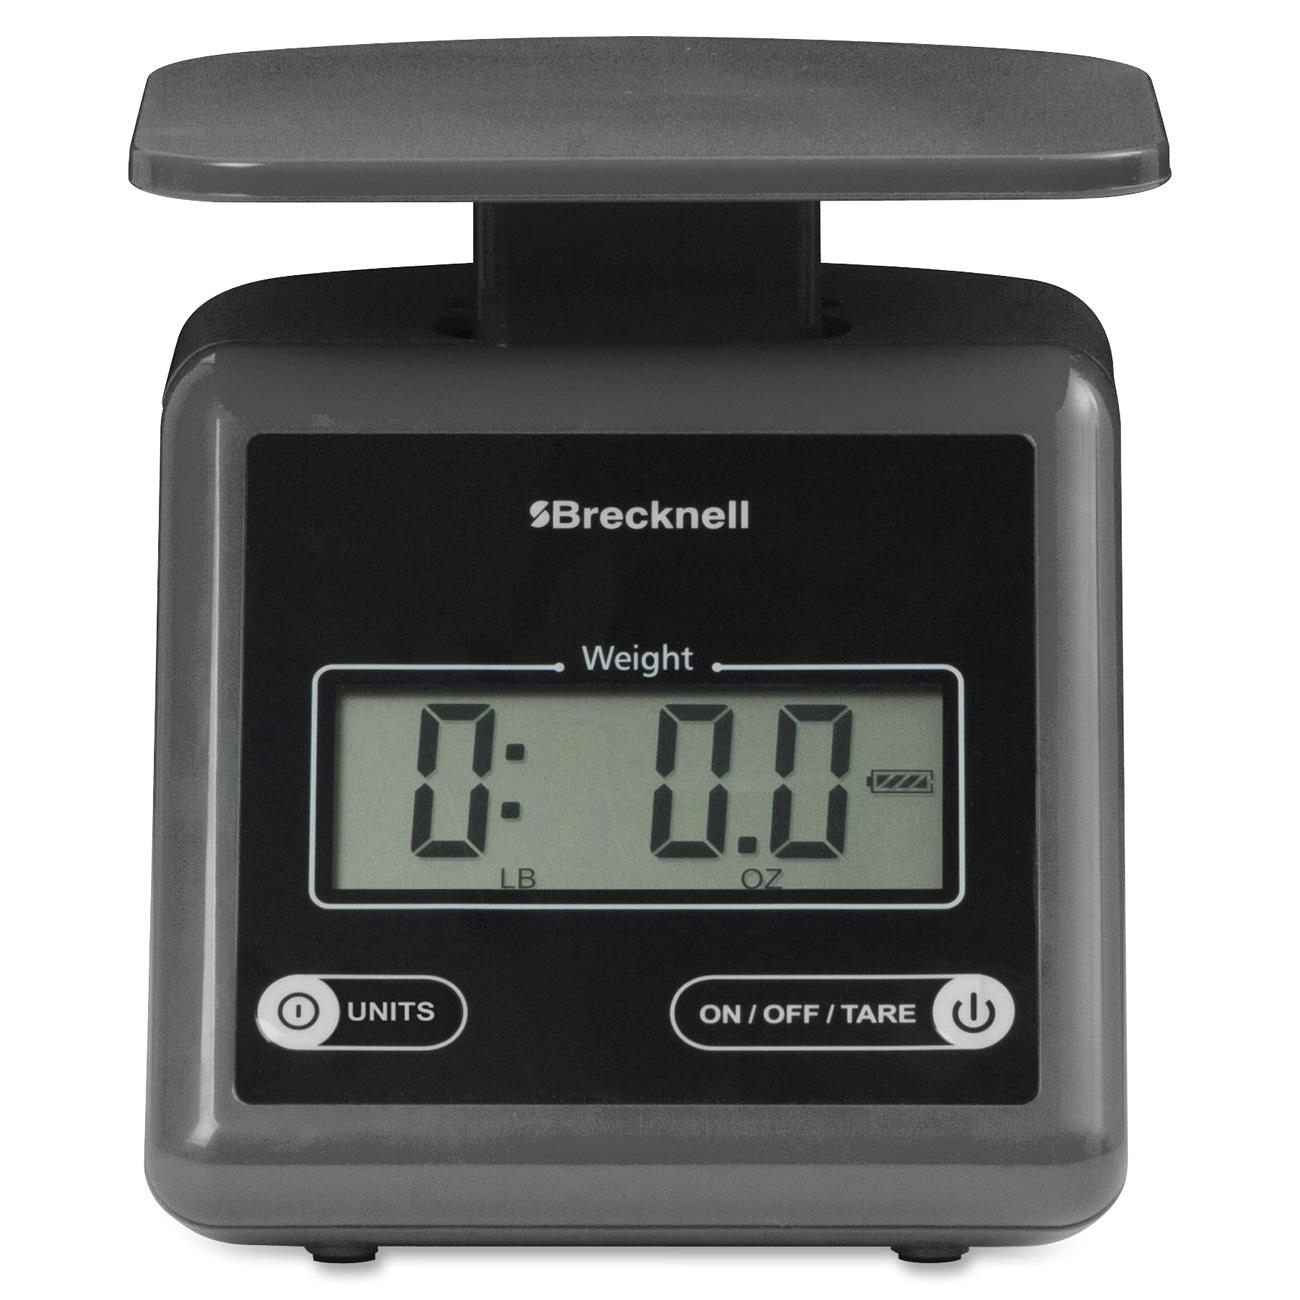 Salter Brecknell Ps-7 Digital Postal Scale Gray (PS7) by SALTER BRECKNELL